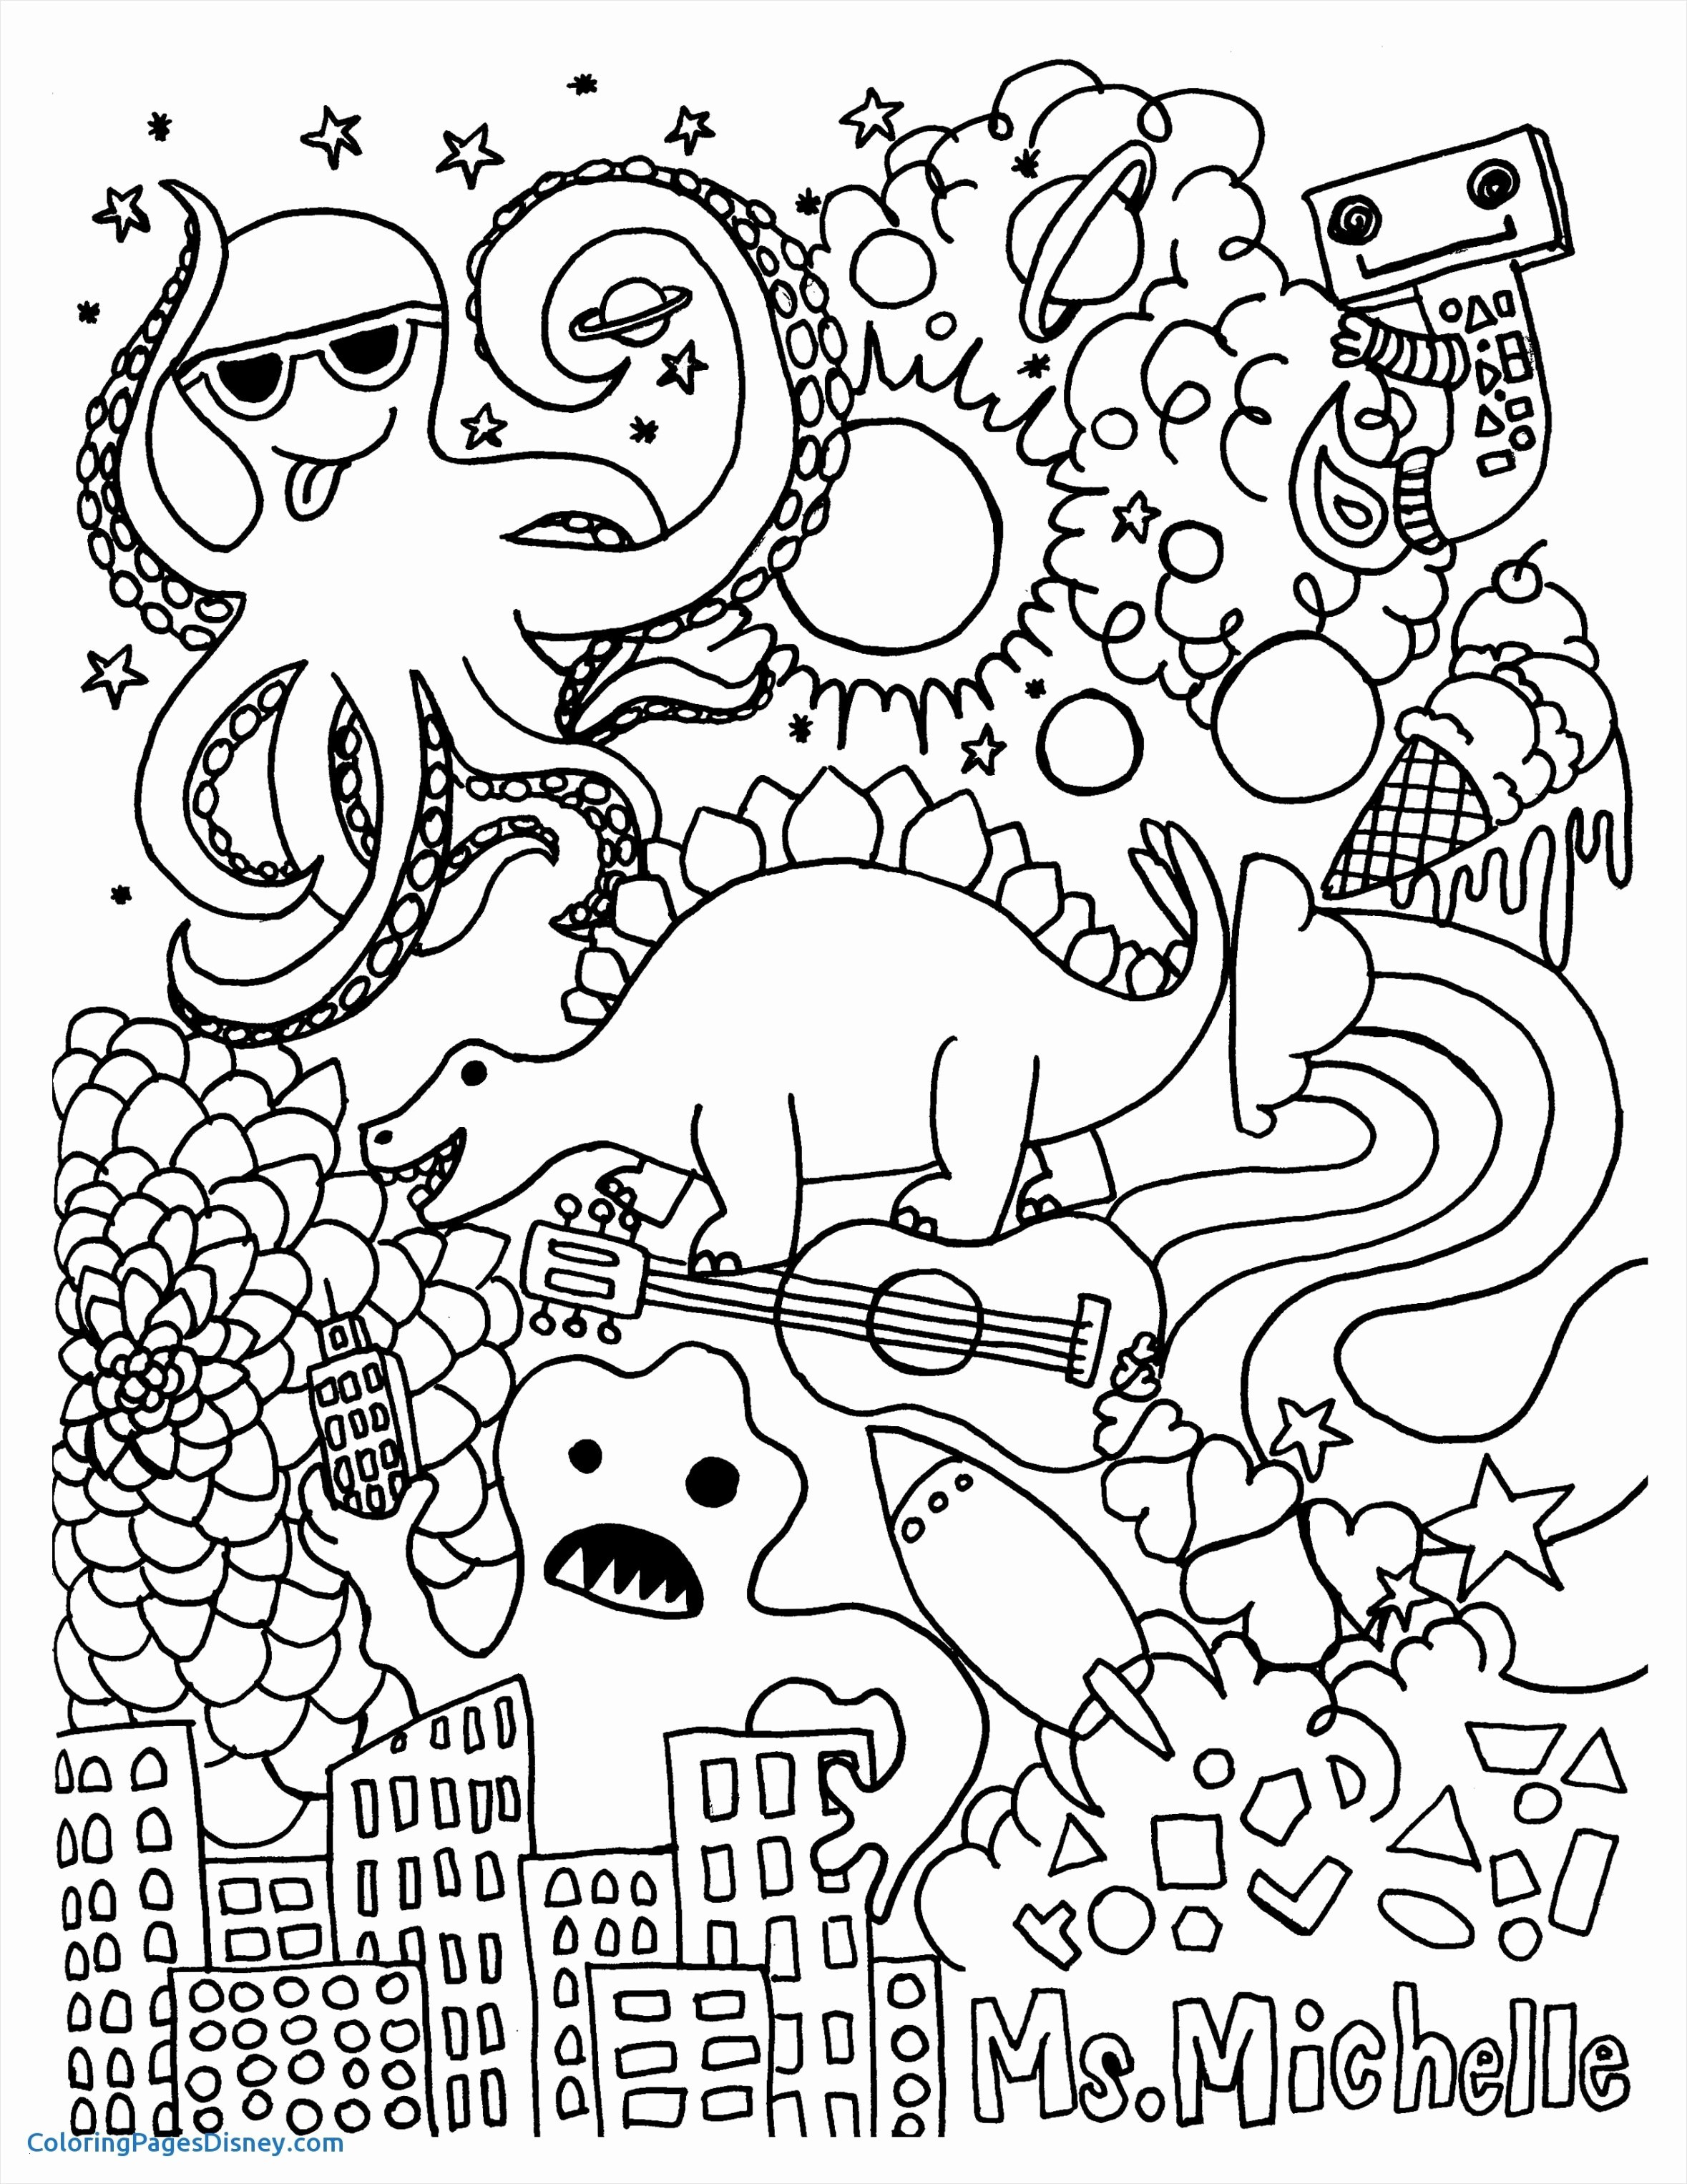 Snowmen Coloring Pages  Collection 5n - Save it to your computer